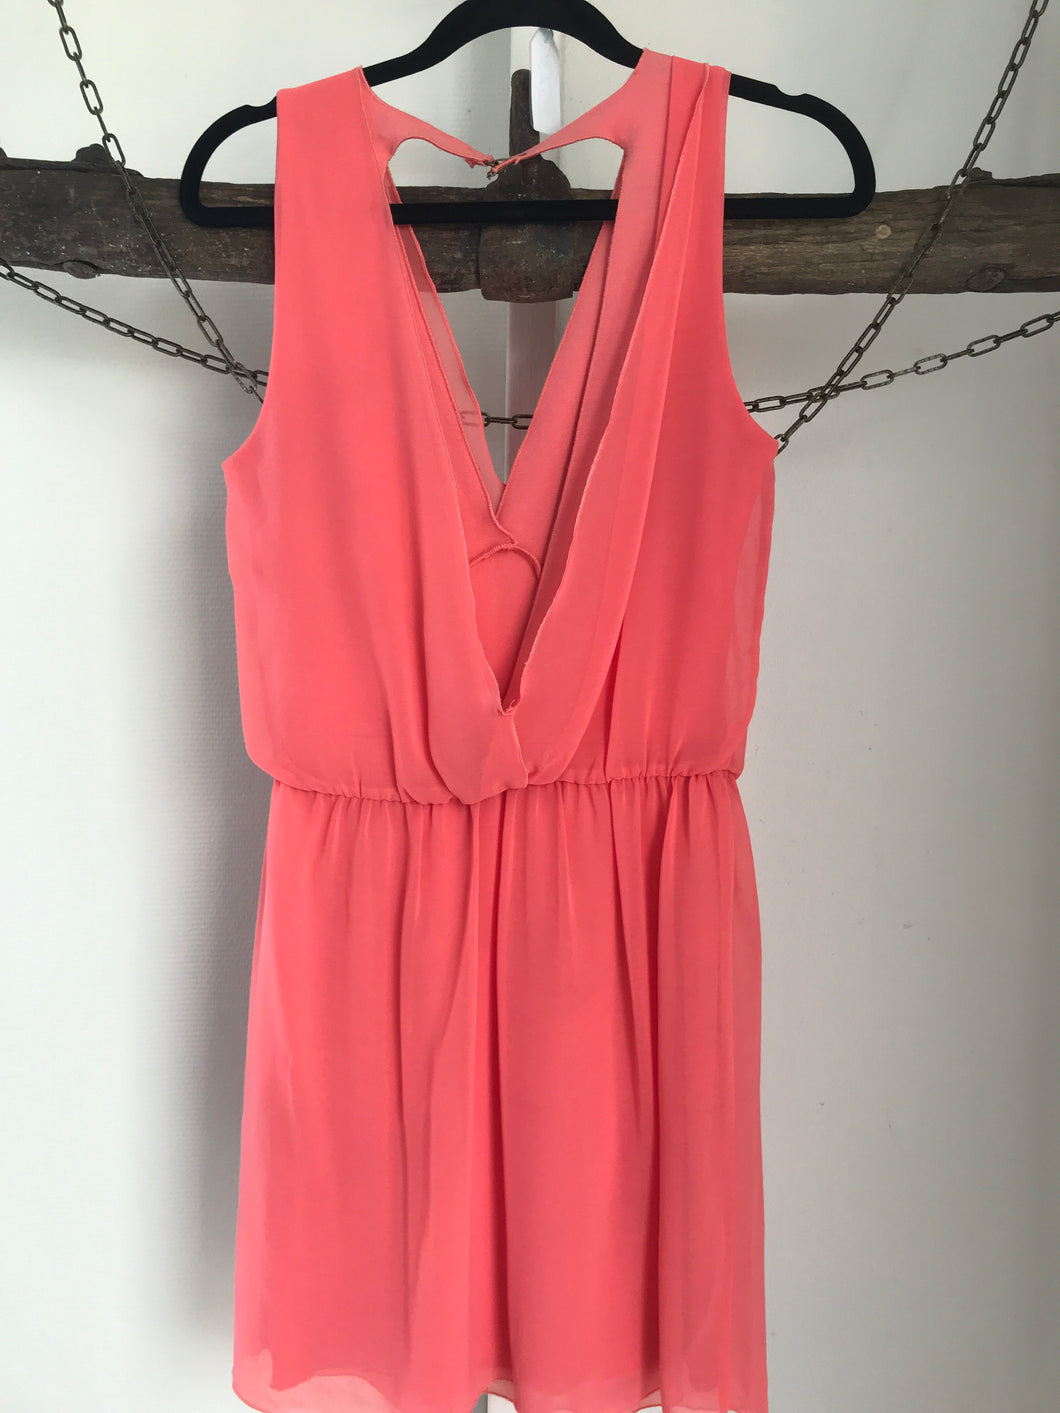 Zara Apricot Dress Size 8